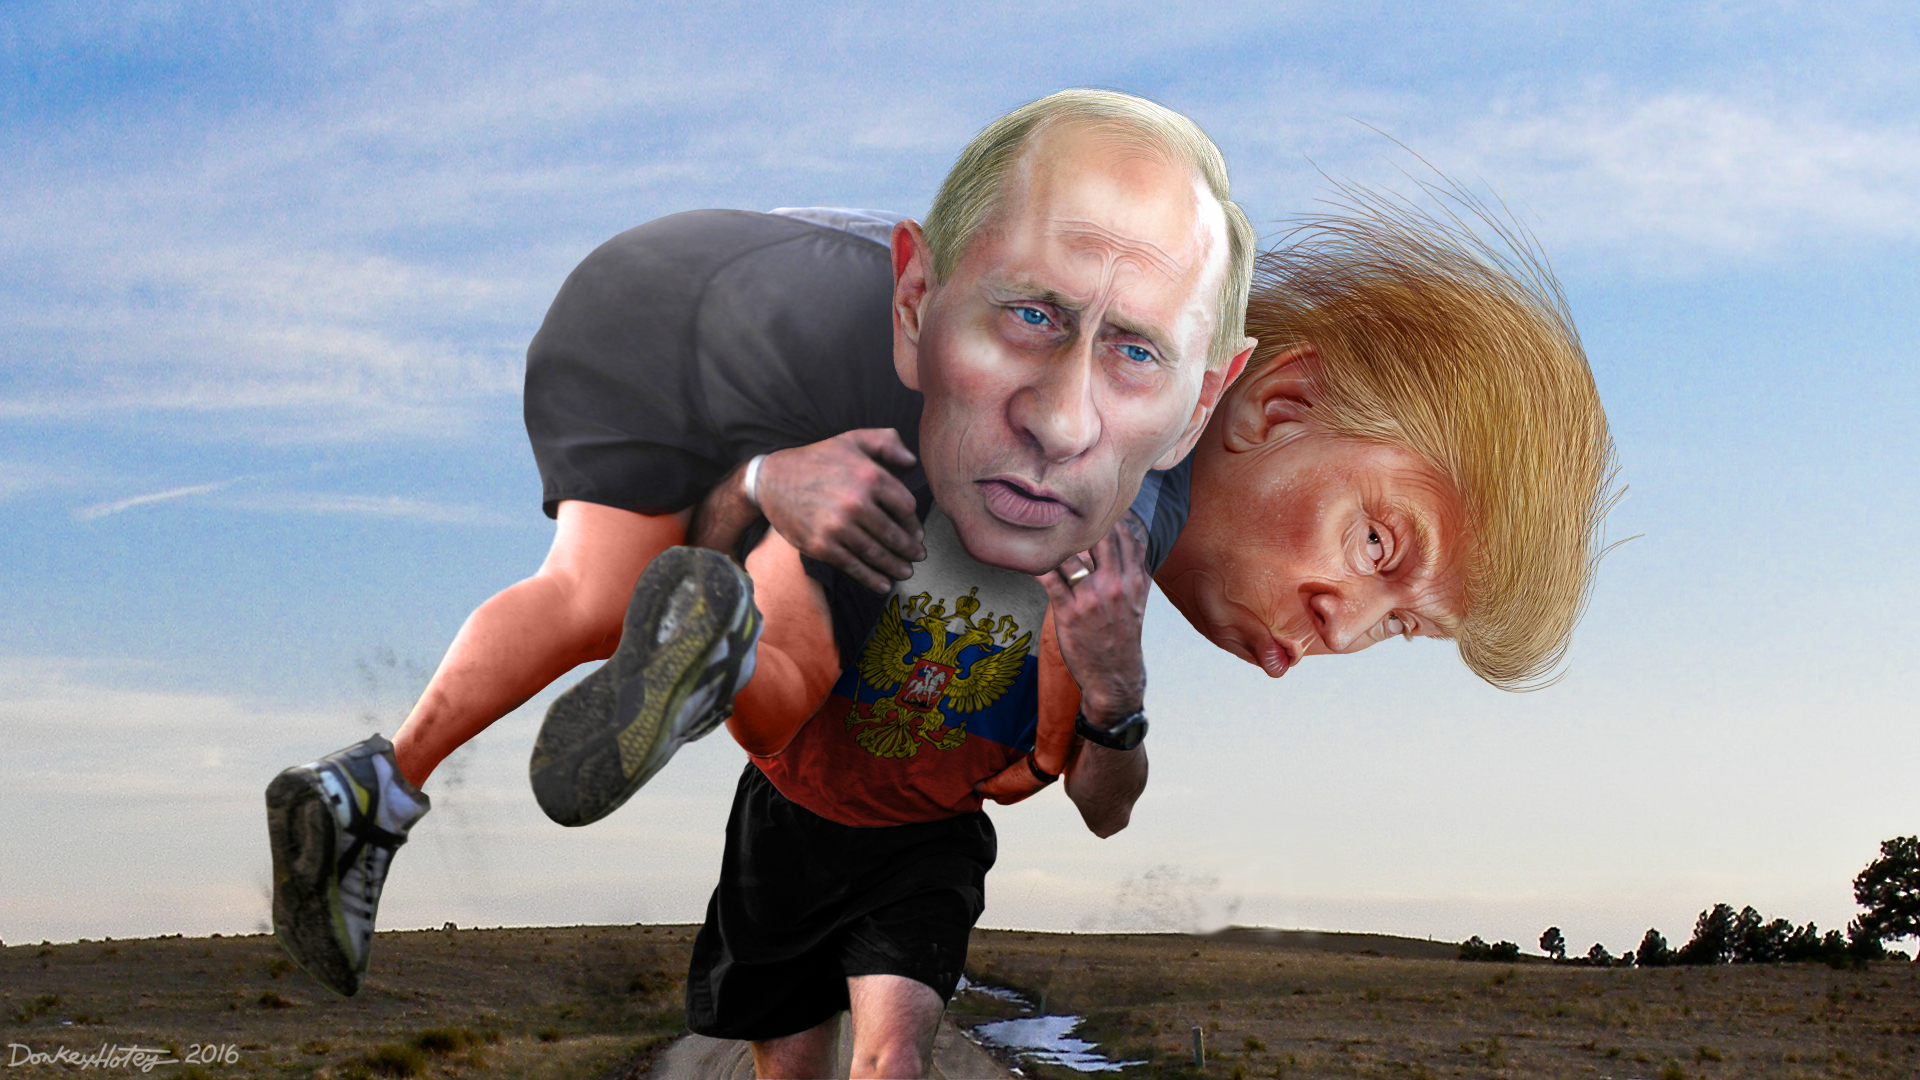 Is Vladimir Putin helping Donald Trump win the race for President of the United States? Credit: DonkeyHotey, https://www.flickr.com/photos/donkeyhotey/28512617446/